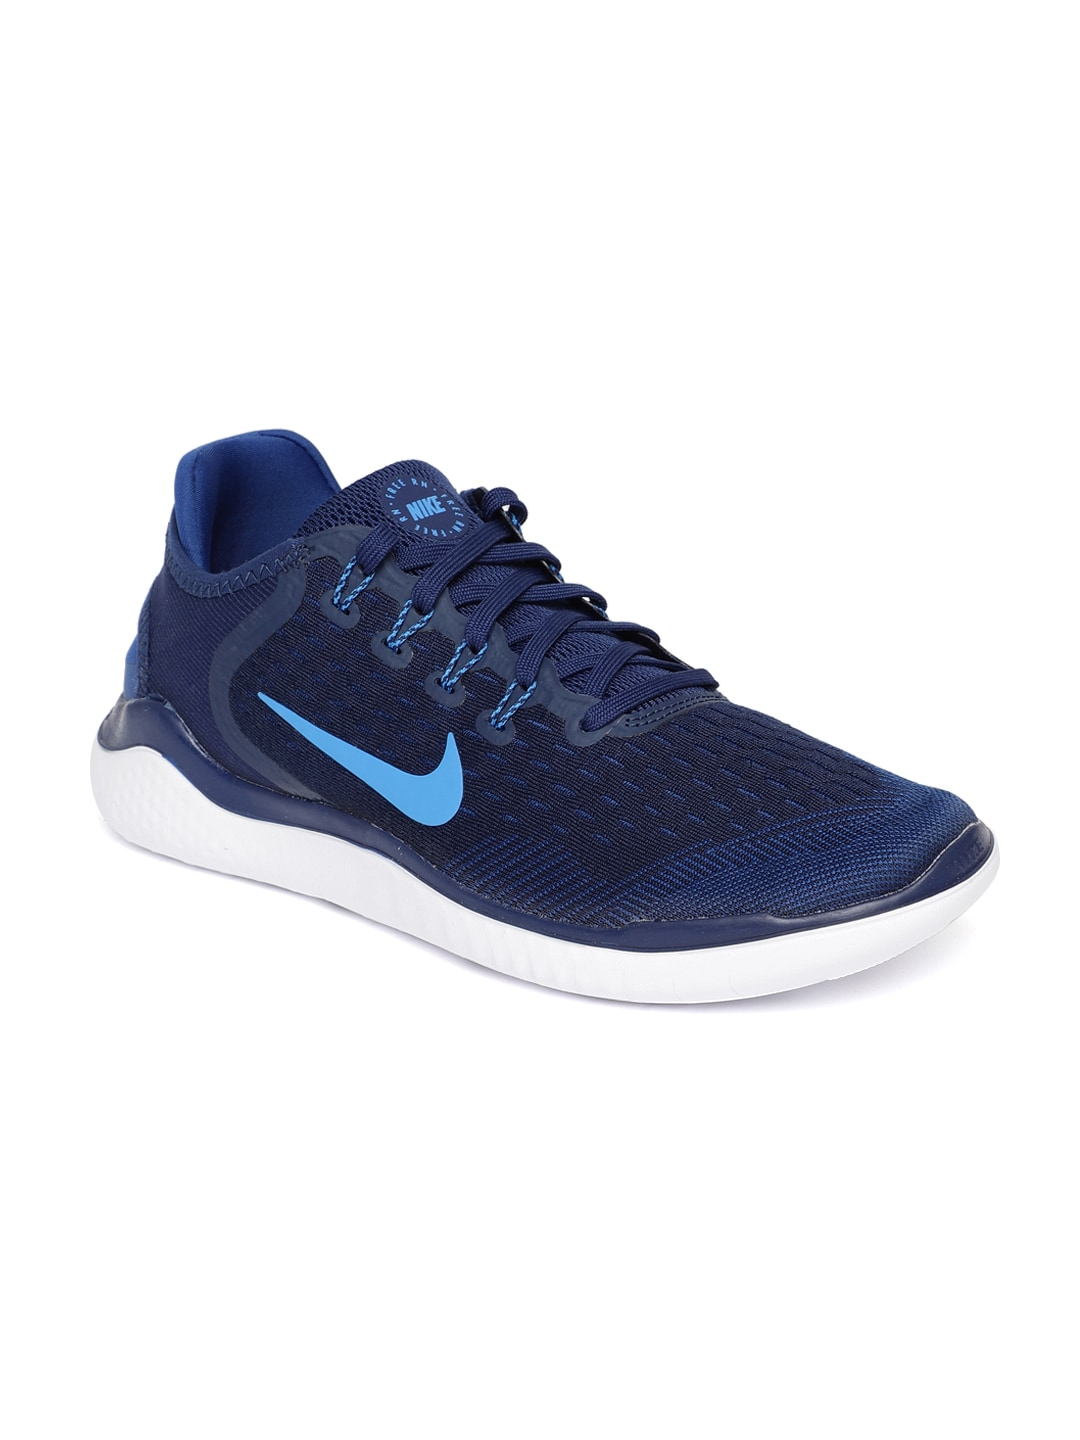 ef7d682810df Nike Free Running Shoes - Buy Nike Free Running Shoes online in India